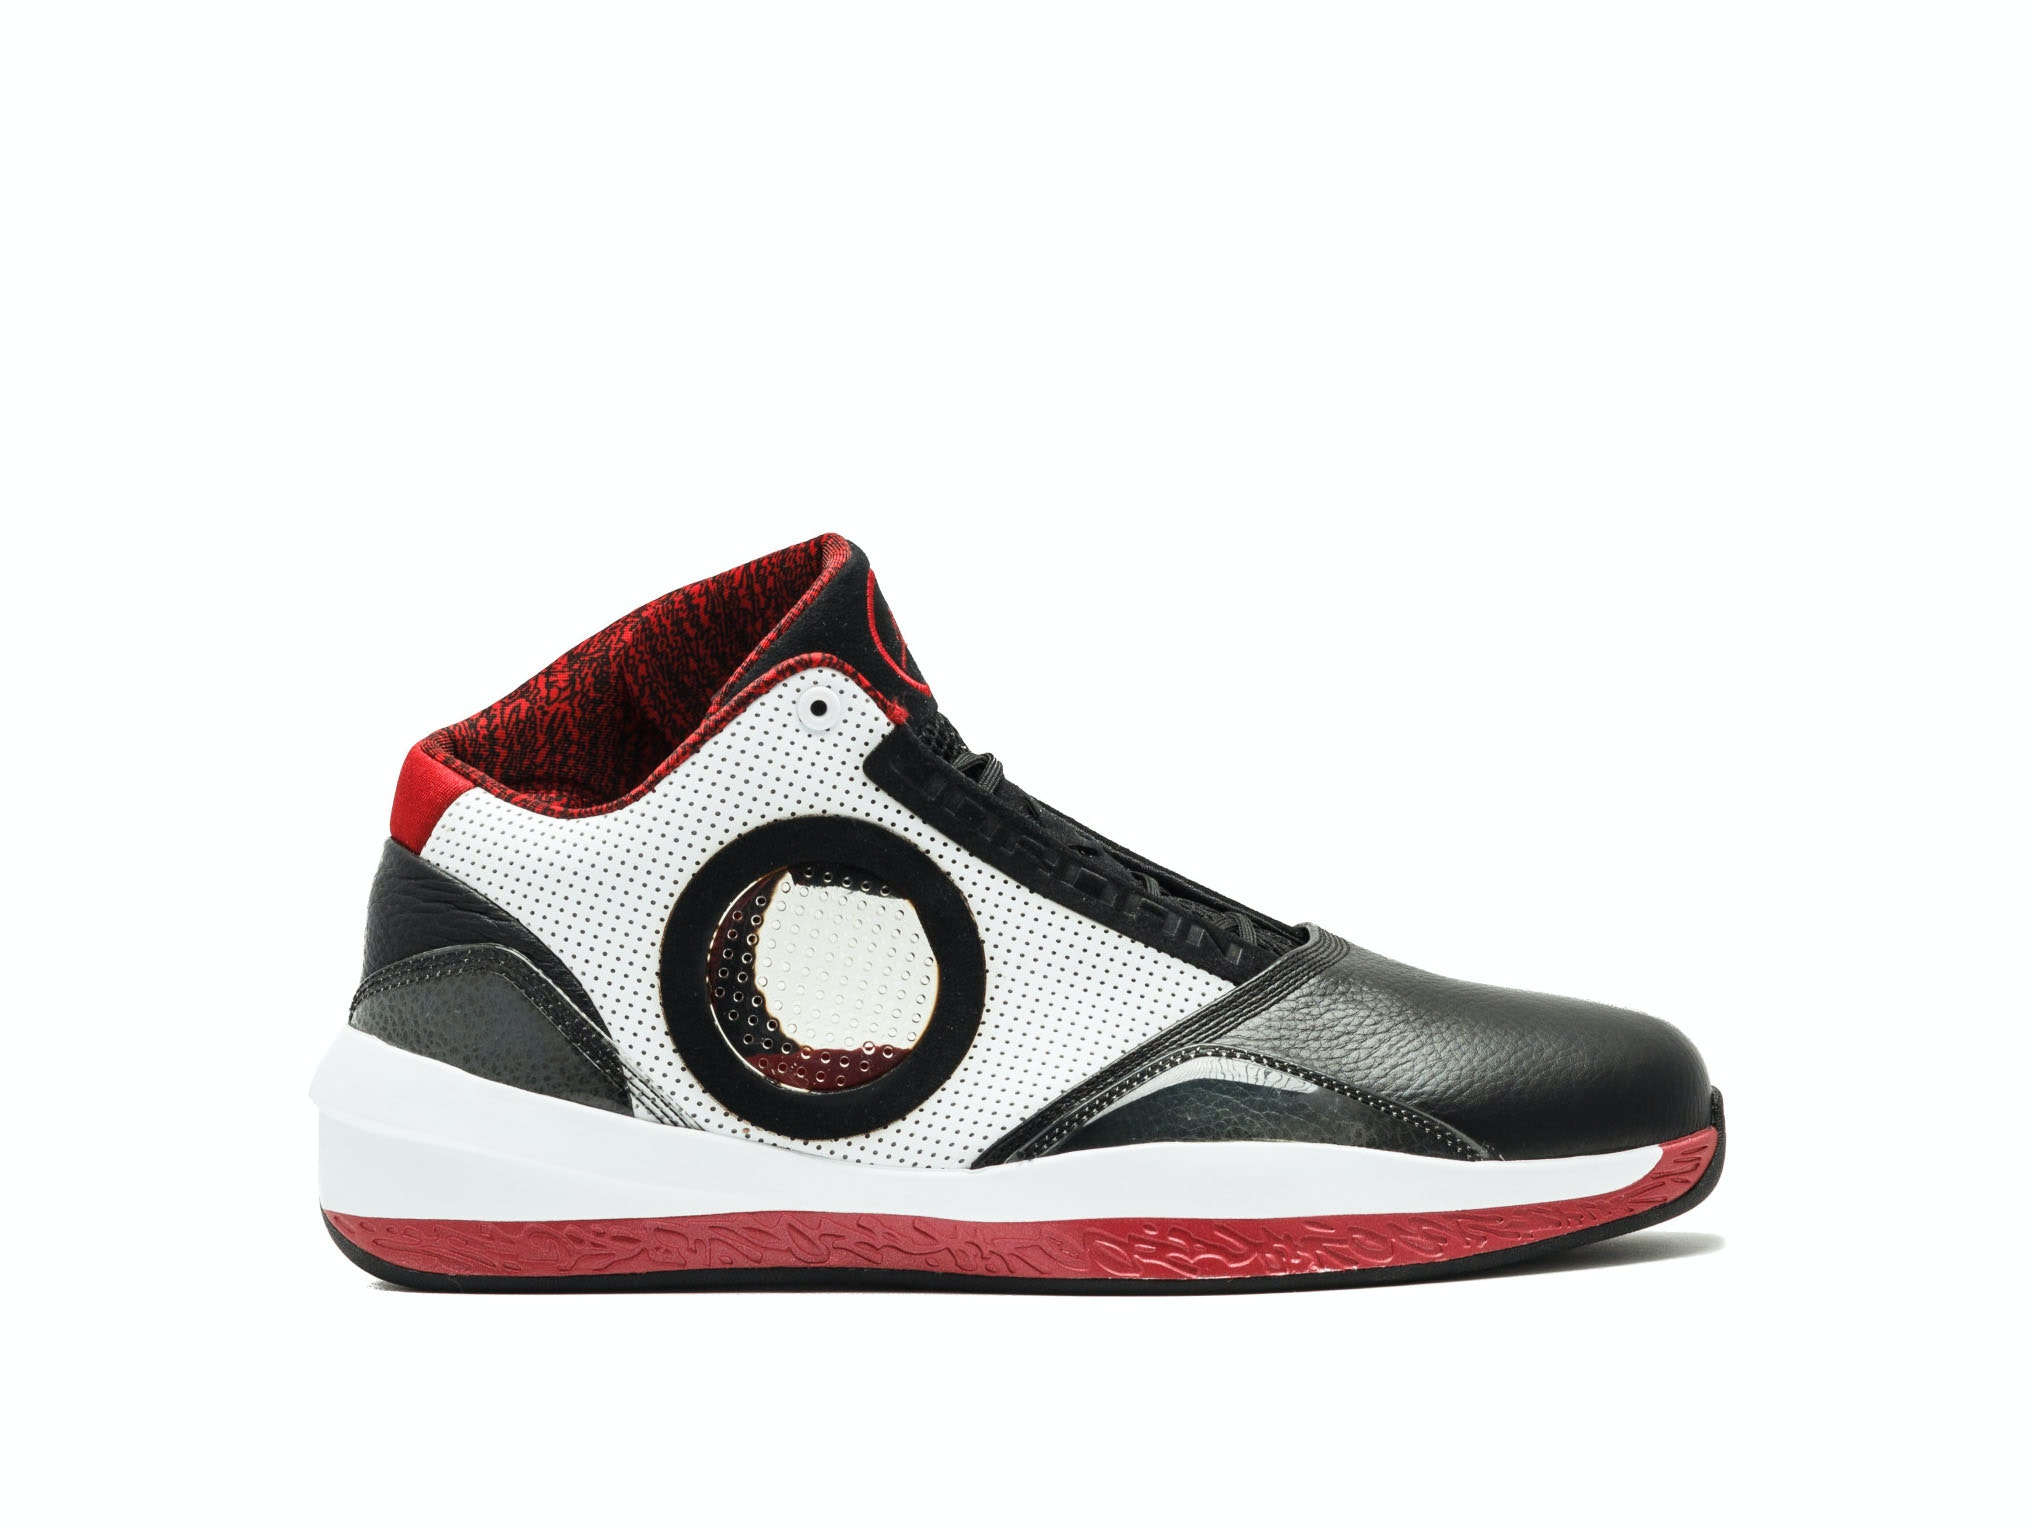 new style 286d9 80e52 Air Jordan 2010 Black Varsity Red